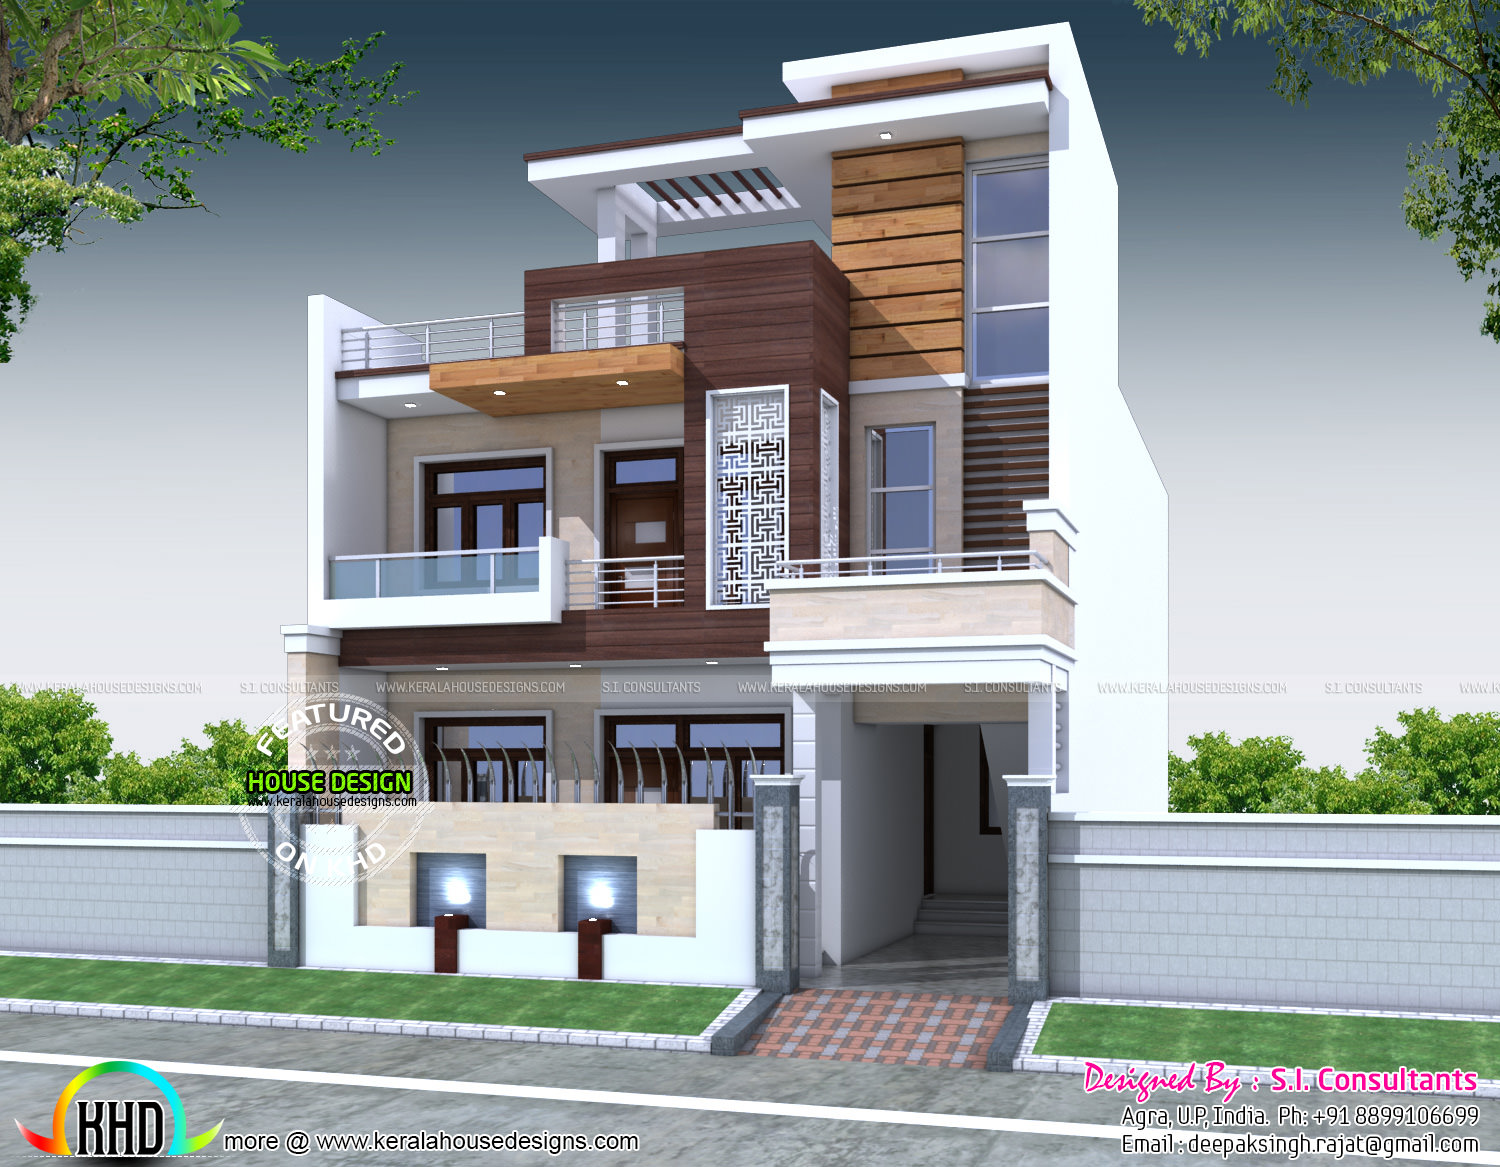 Decorative 5 bedroom house architecture kerala home for Modern indian house plans